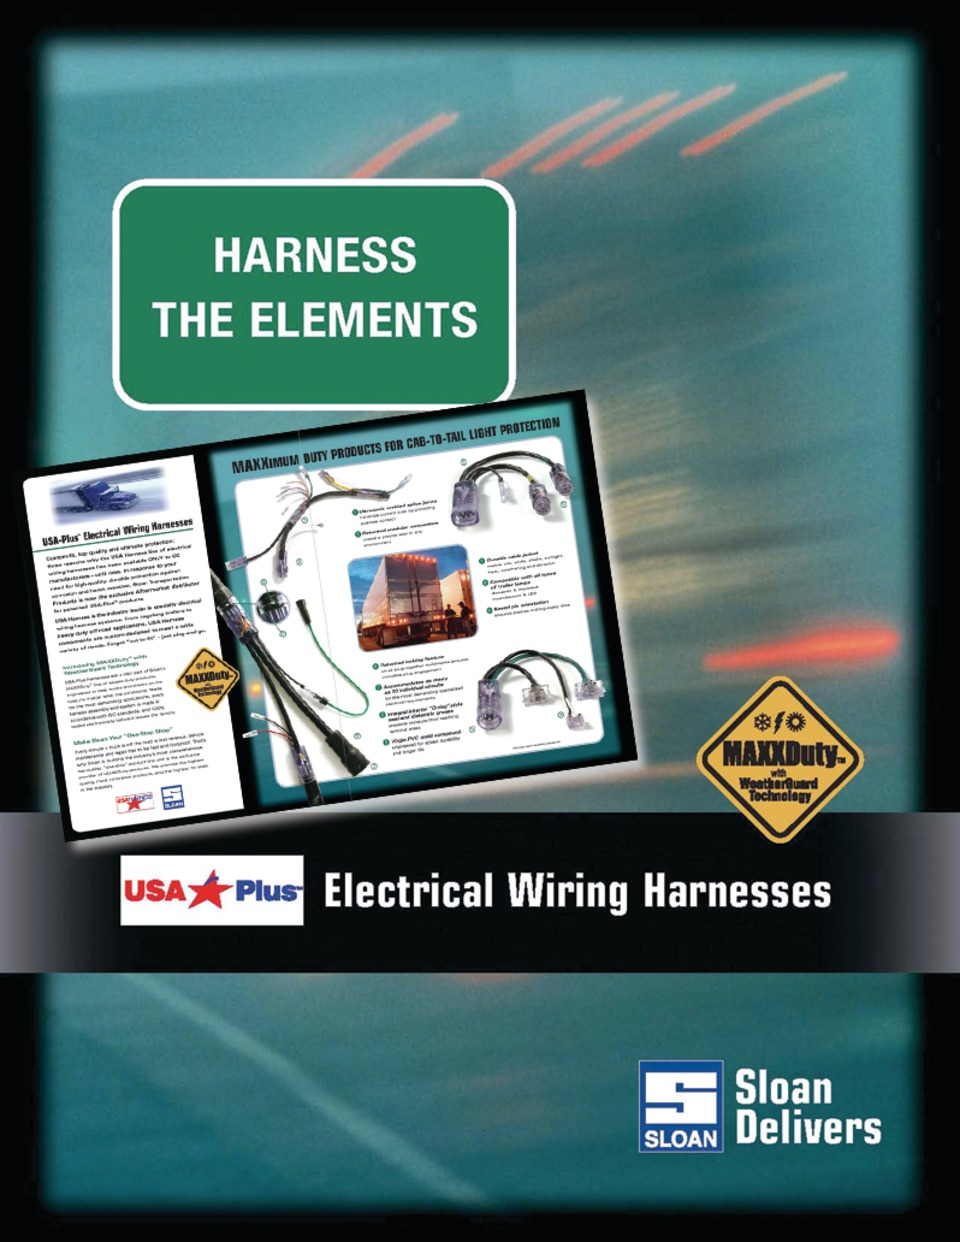 Sloan Transportation Products USA-Plus electrical wiring harnesses ...